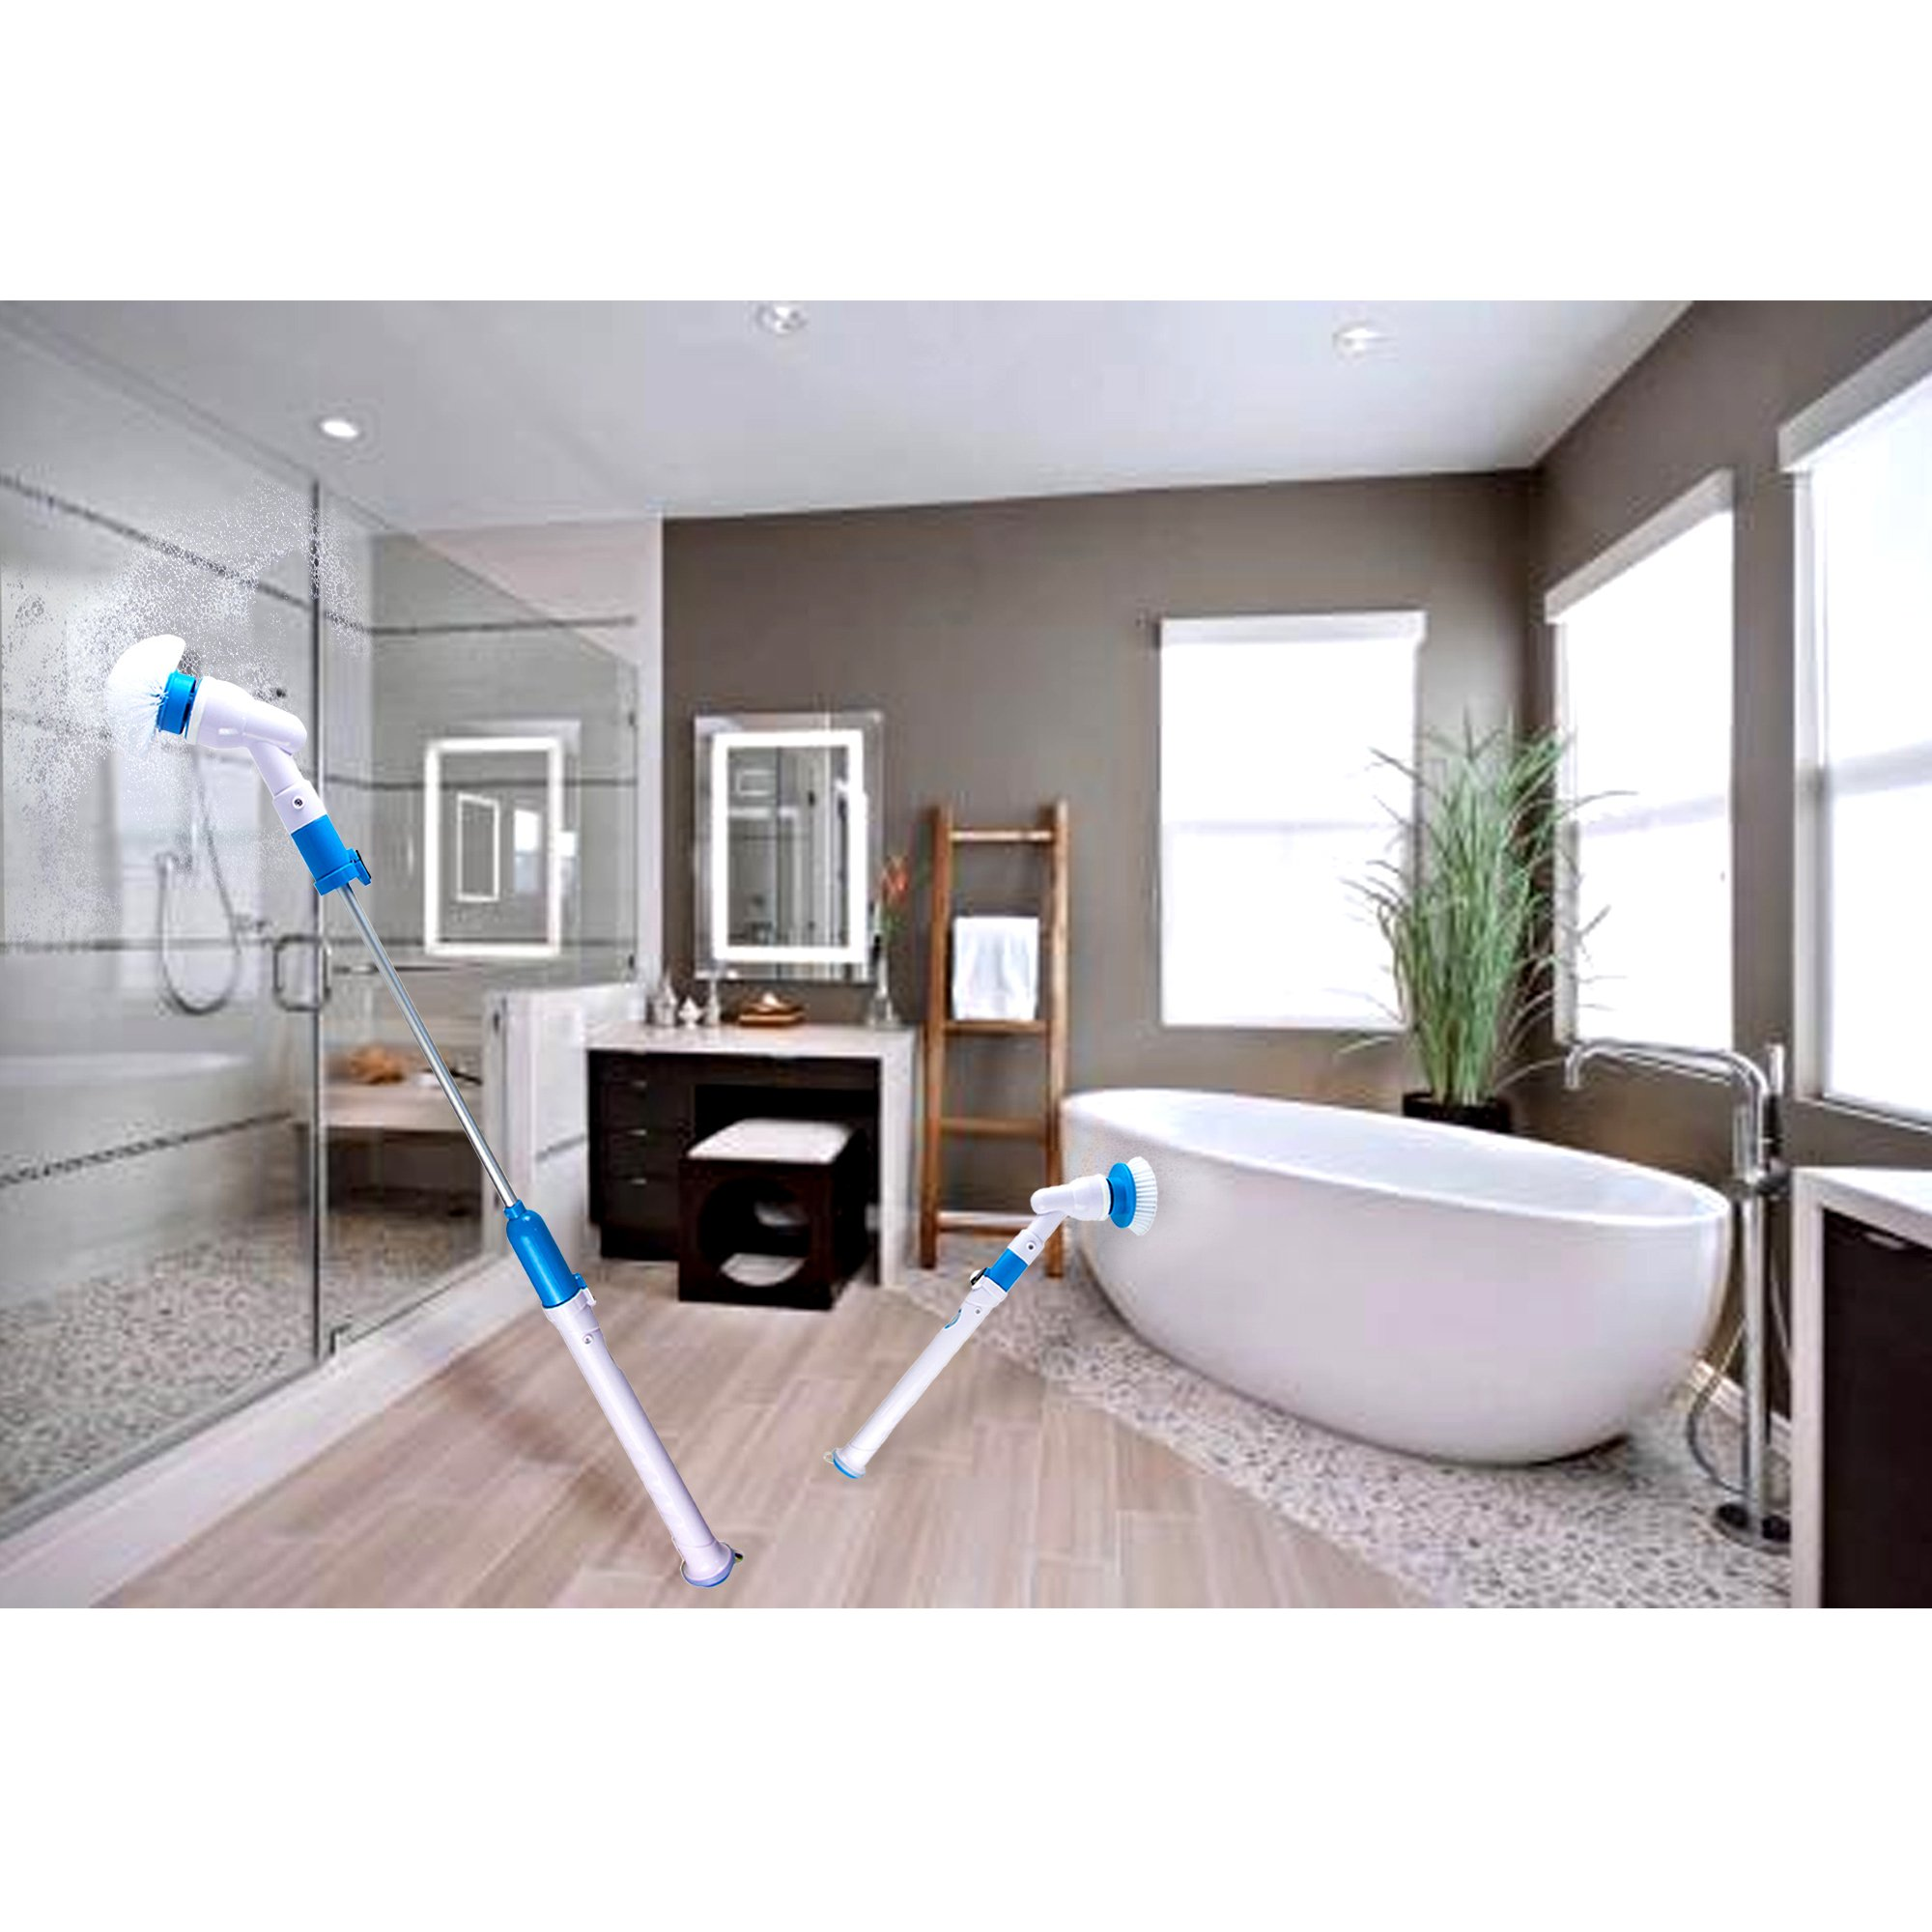 Electric Spin ScrubberReabeamHigh Power Automatic Cleaning - Automatic bathroom scrubber